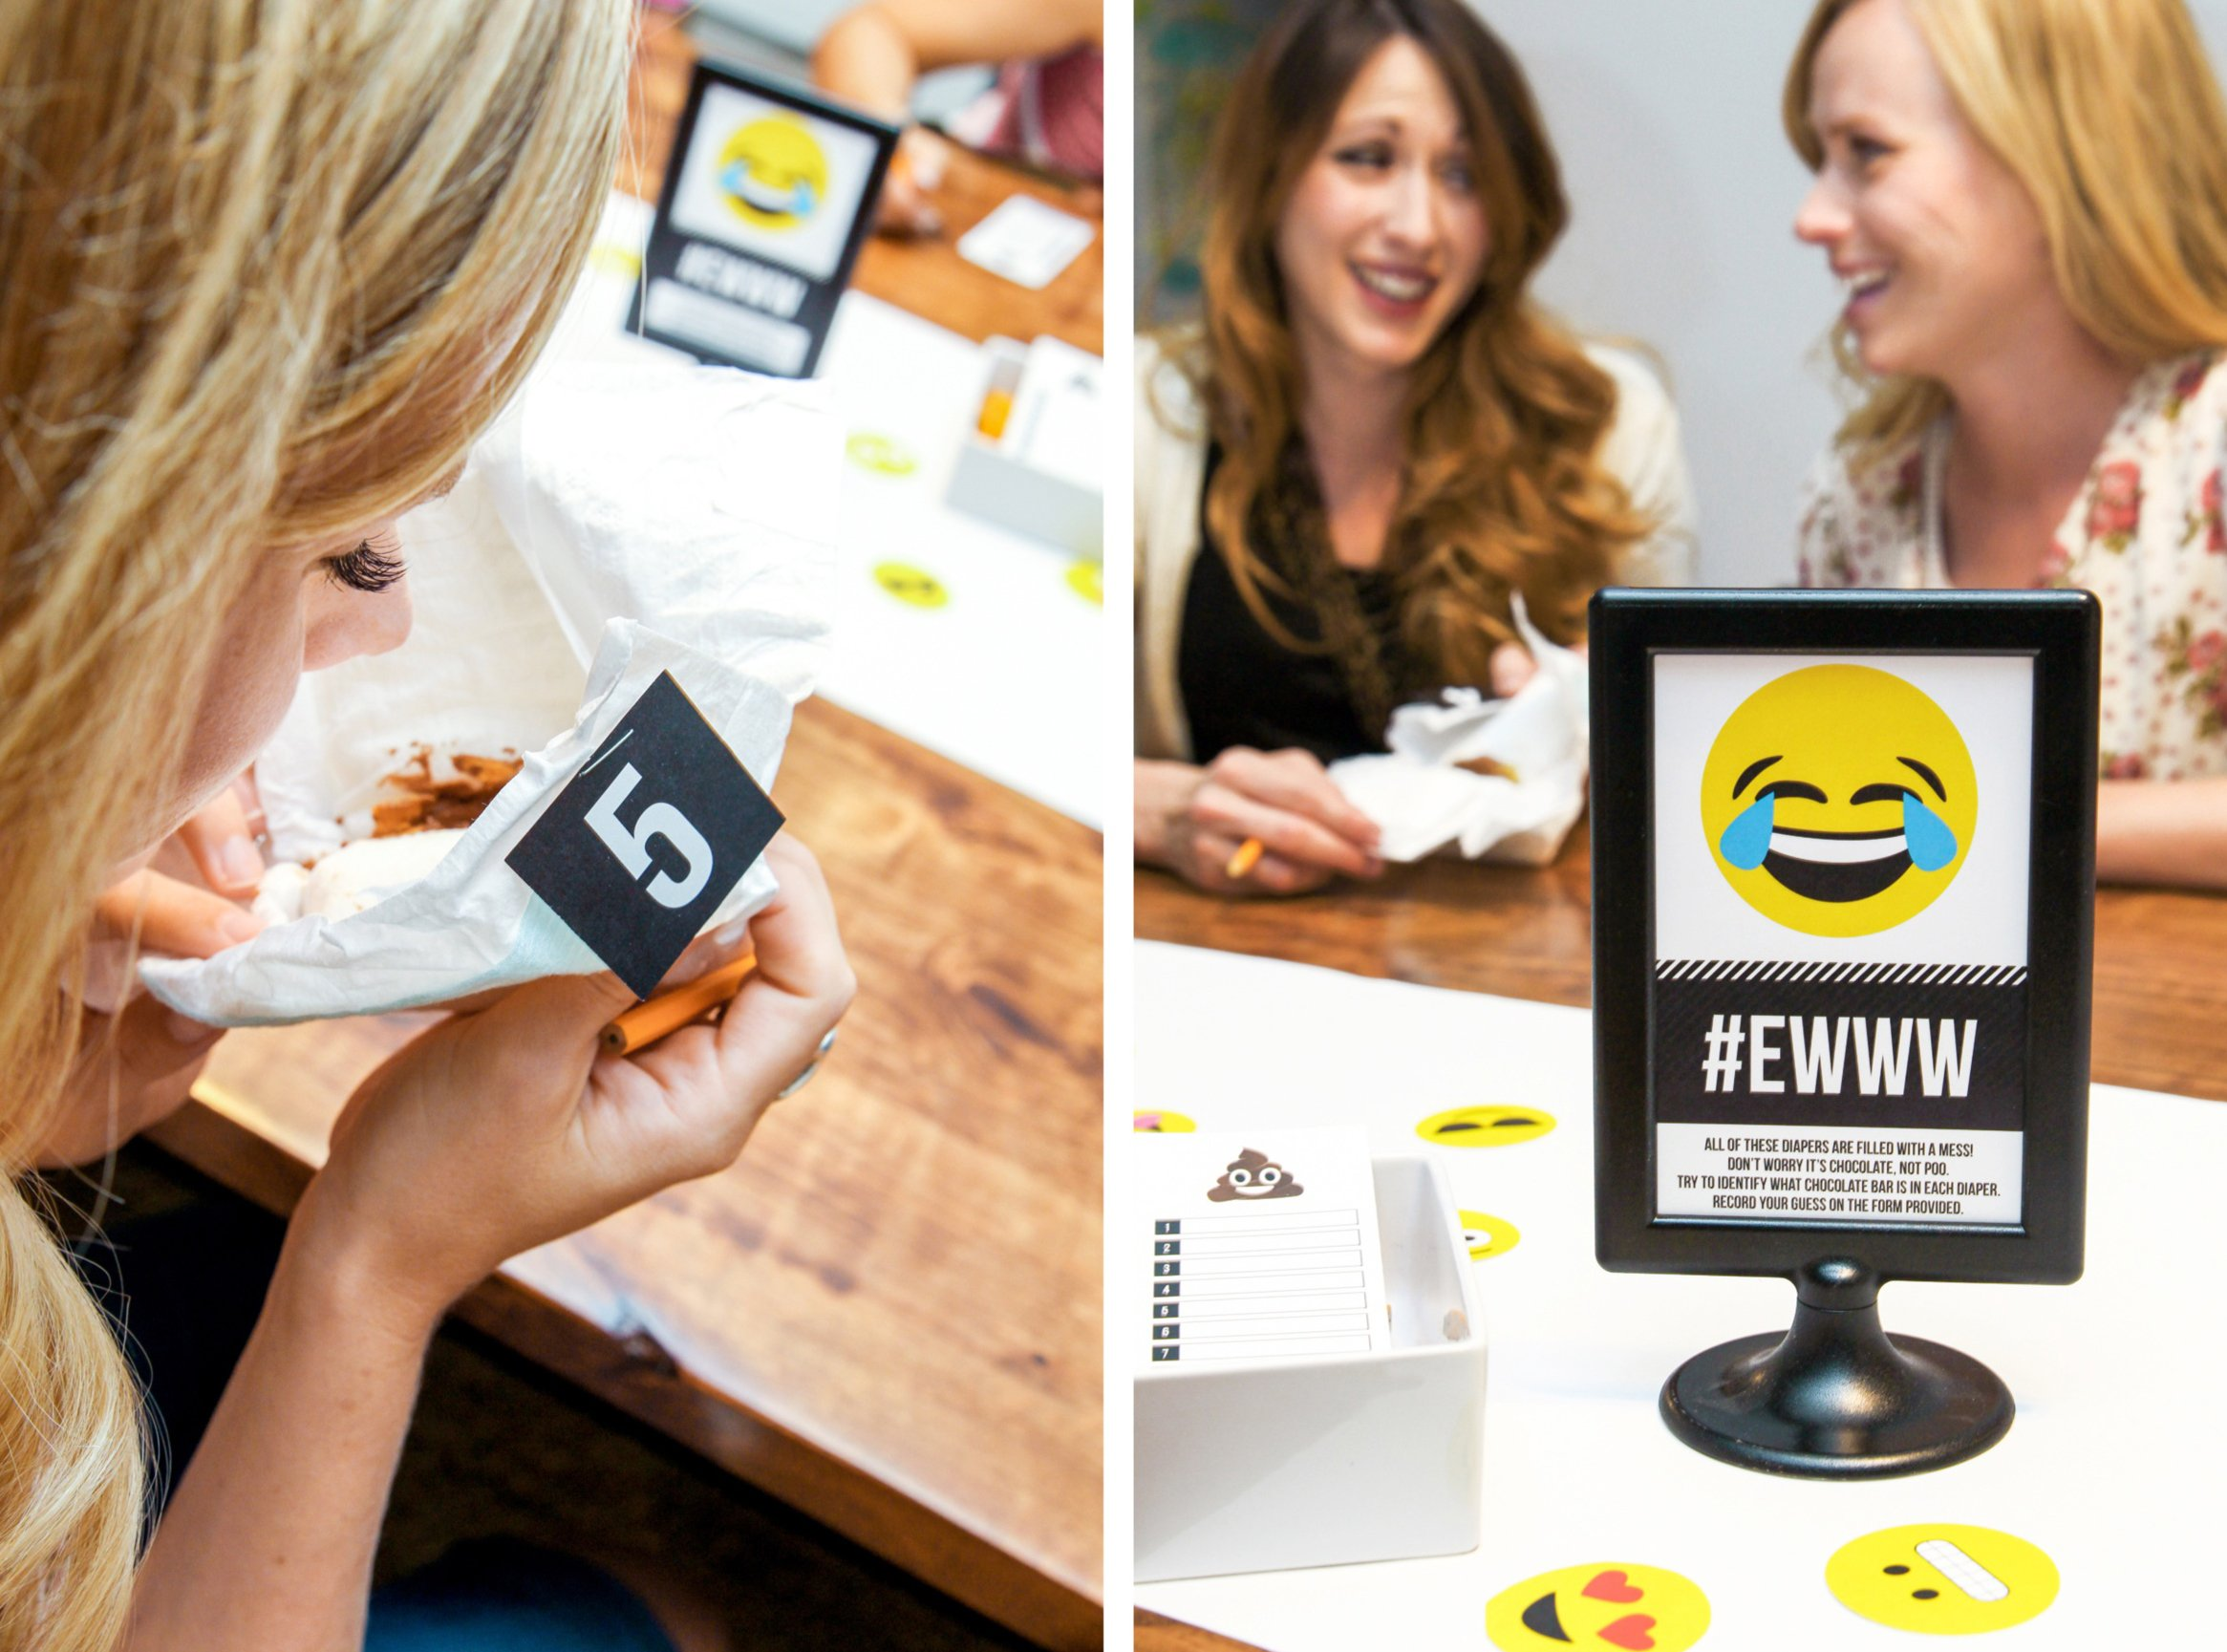 You know that Candy Bar in the Diaper Game at Baby Showers? I'm totally grossed out normally, but it's actually pretty perfect for an Emoji Baby Shower. Get the free printable game pieces inspired by the Poo Emoji LOL! via @PagingSupermom